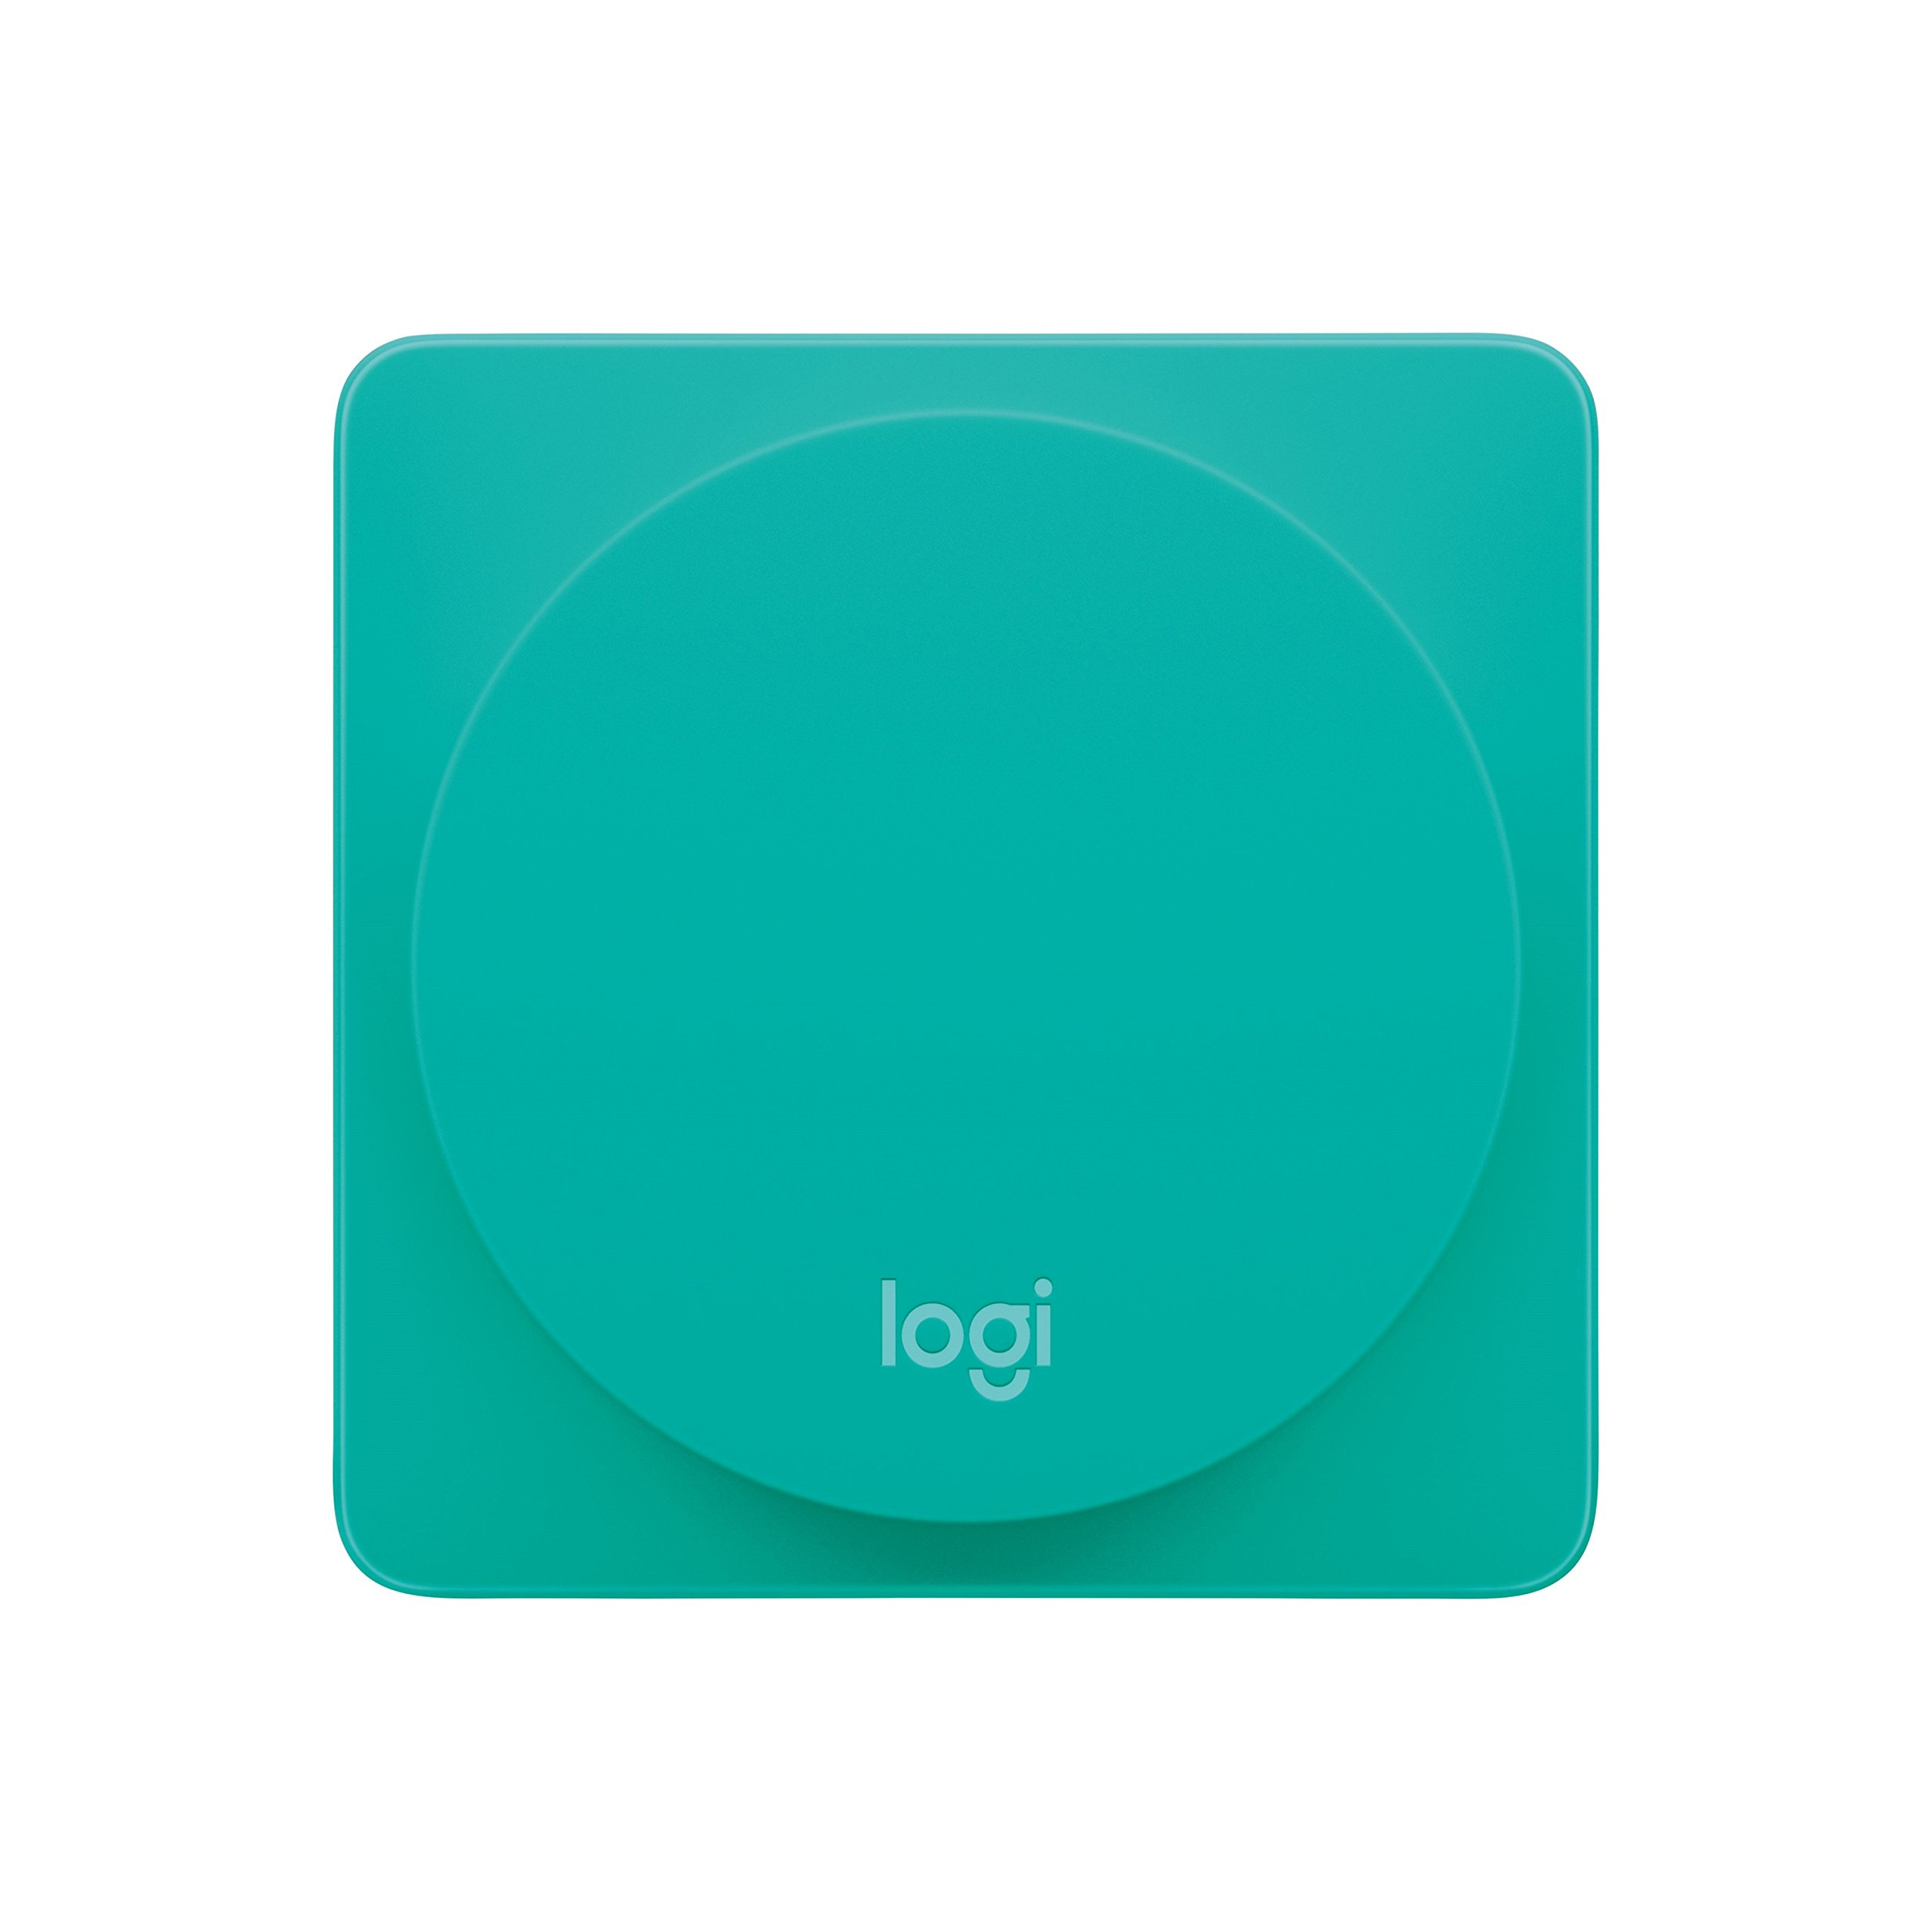 Logitech Pop Interrupteur additionnel pour Kit de démarrage Pop (Teal)